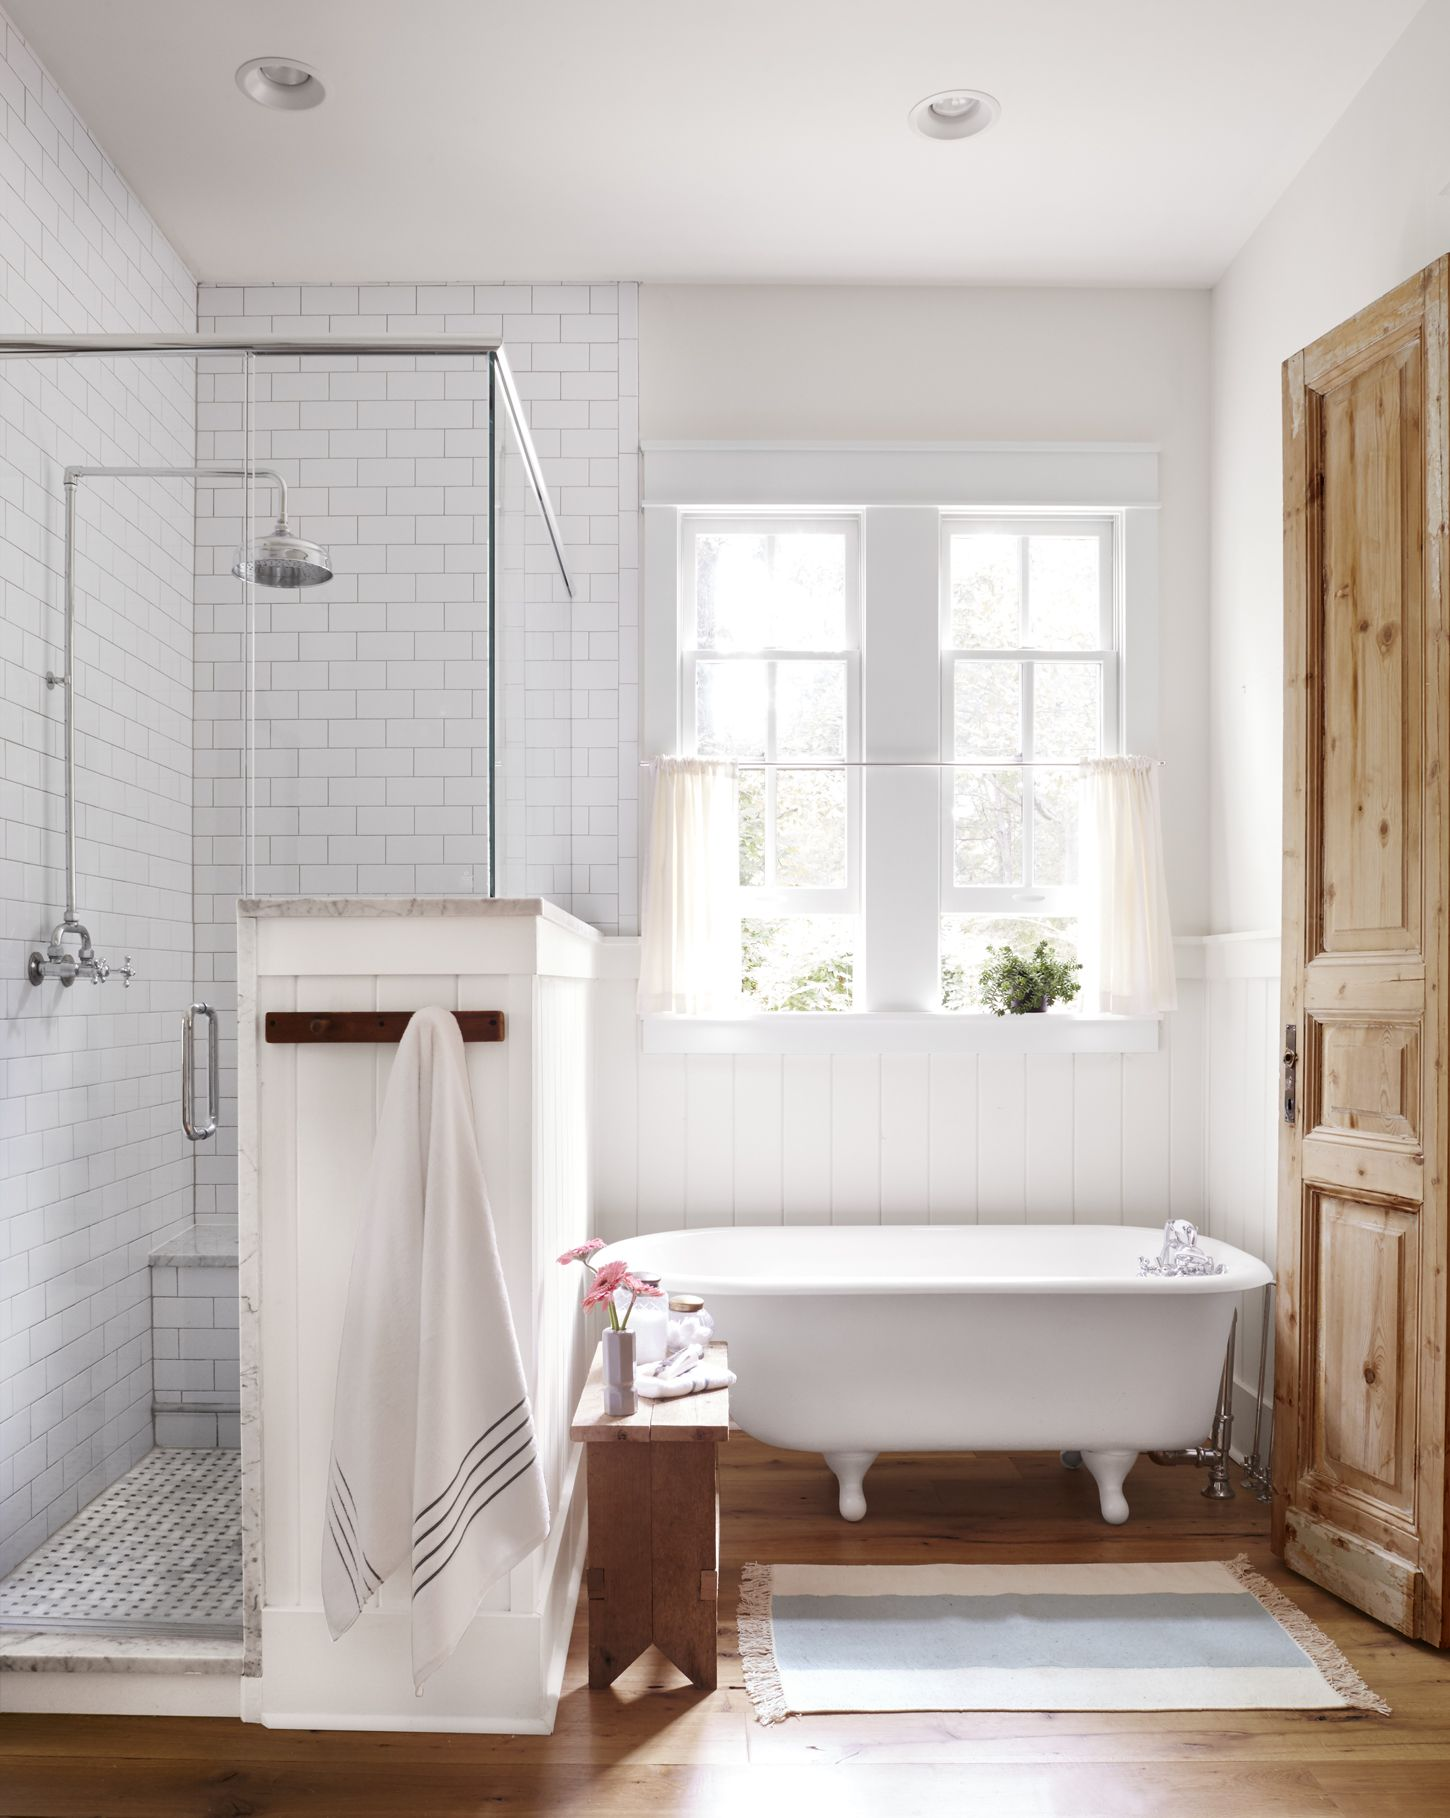 A refurbished 1930s claw foot bathtub is a quaint spot to soak in the suds and the sunshine its also the perfect country counterpoint to the modern